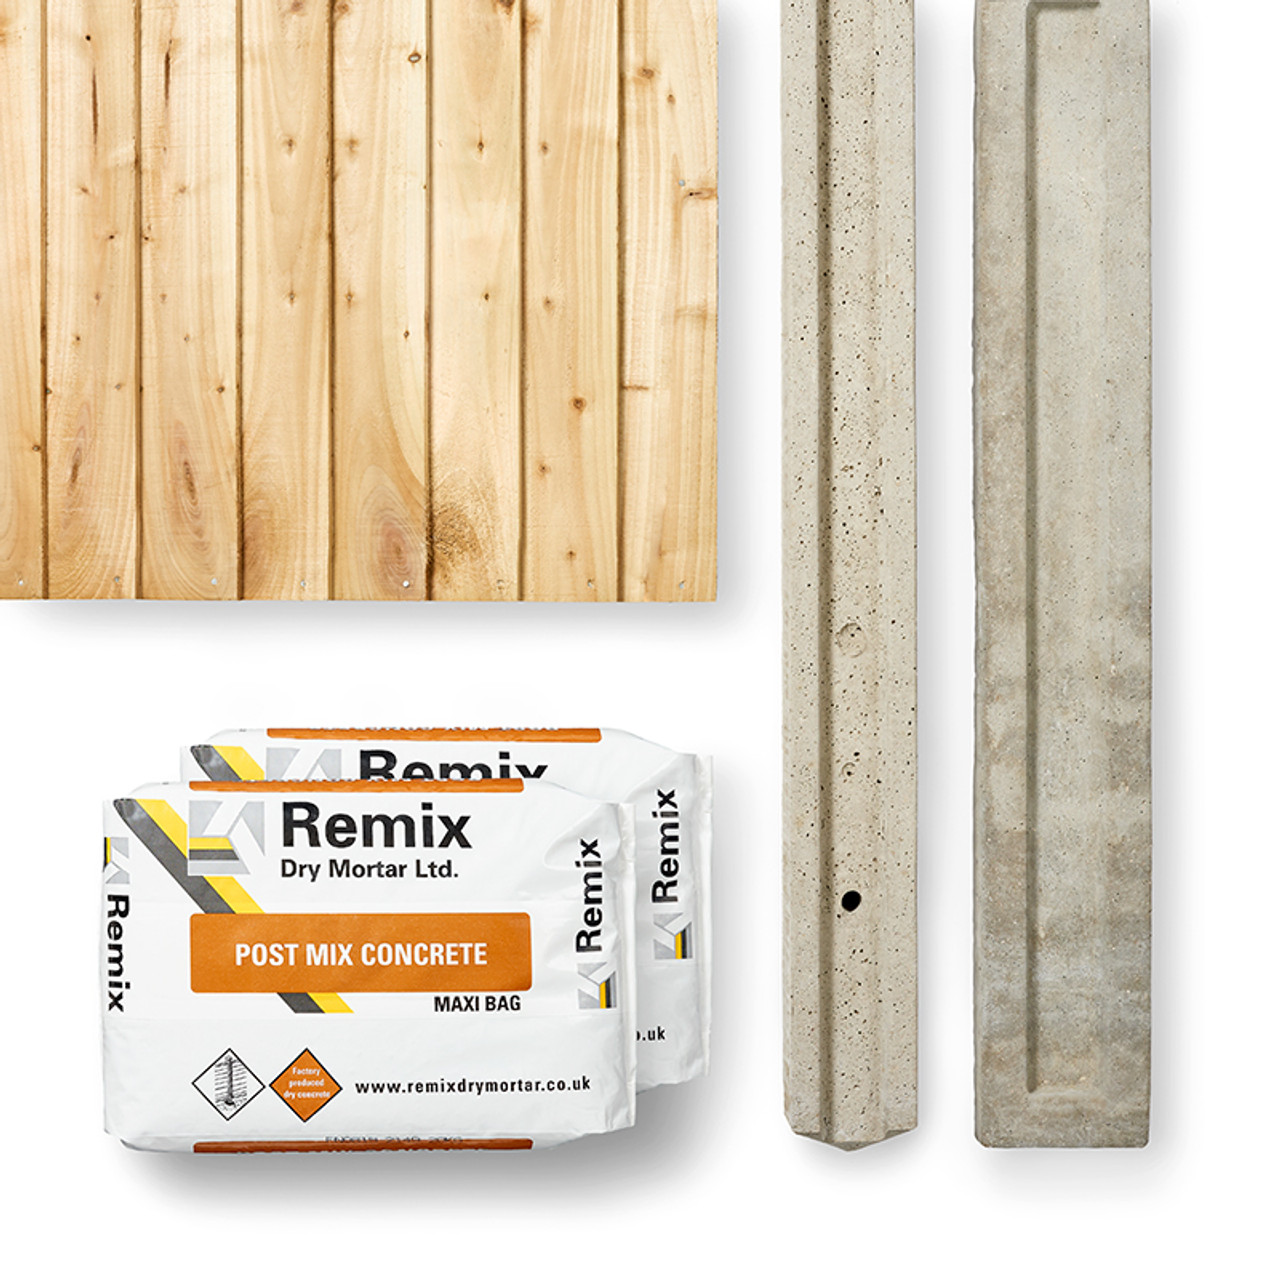 Closeboard Fence Panel Kit (1830 x 1650mm) - Natural Timber with Concrete  Post, Concrete and Gravel Board